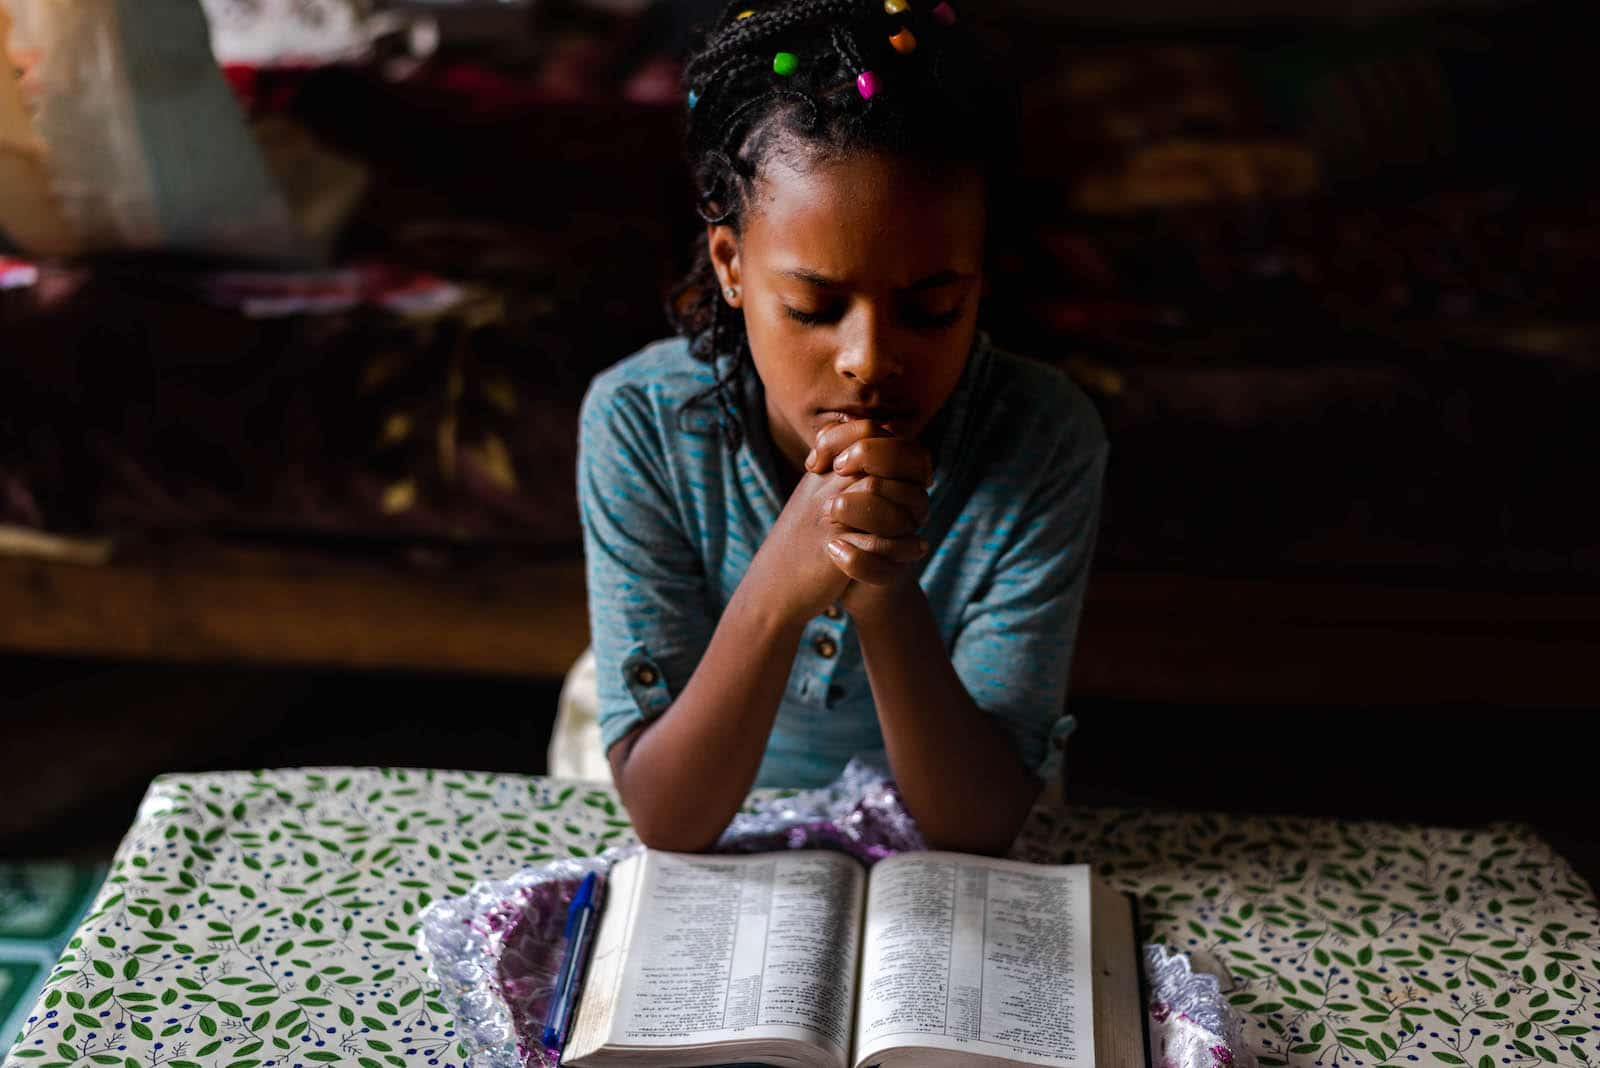 A girl leans on a bed, praying over a Bible.